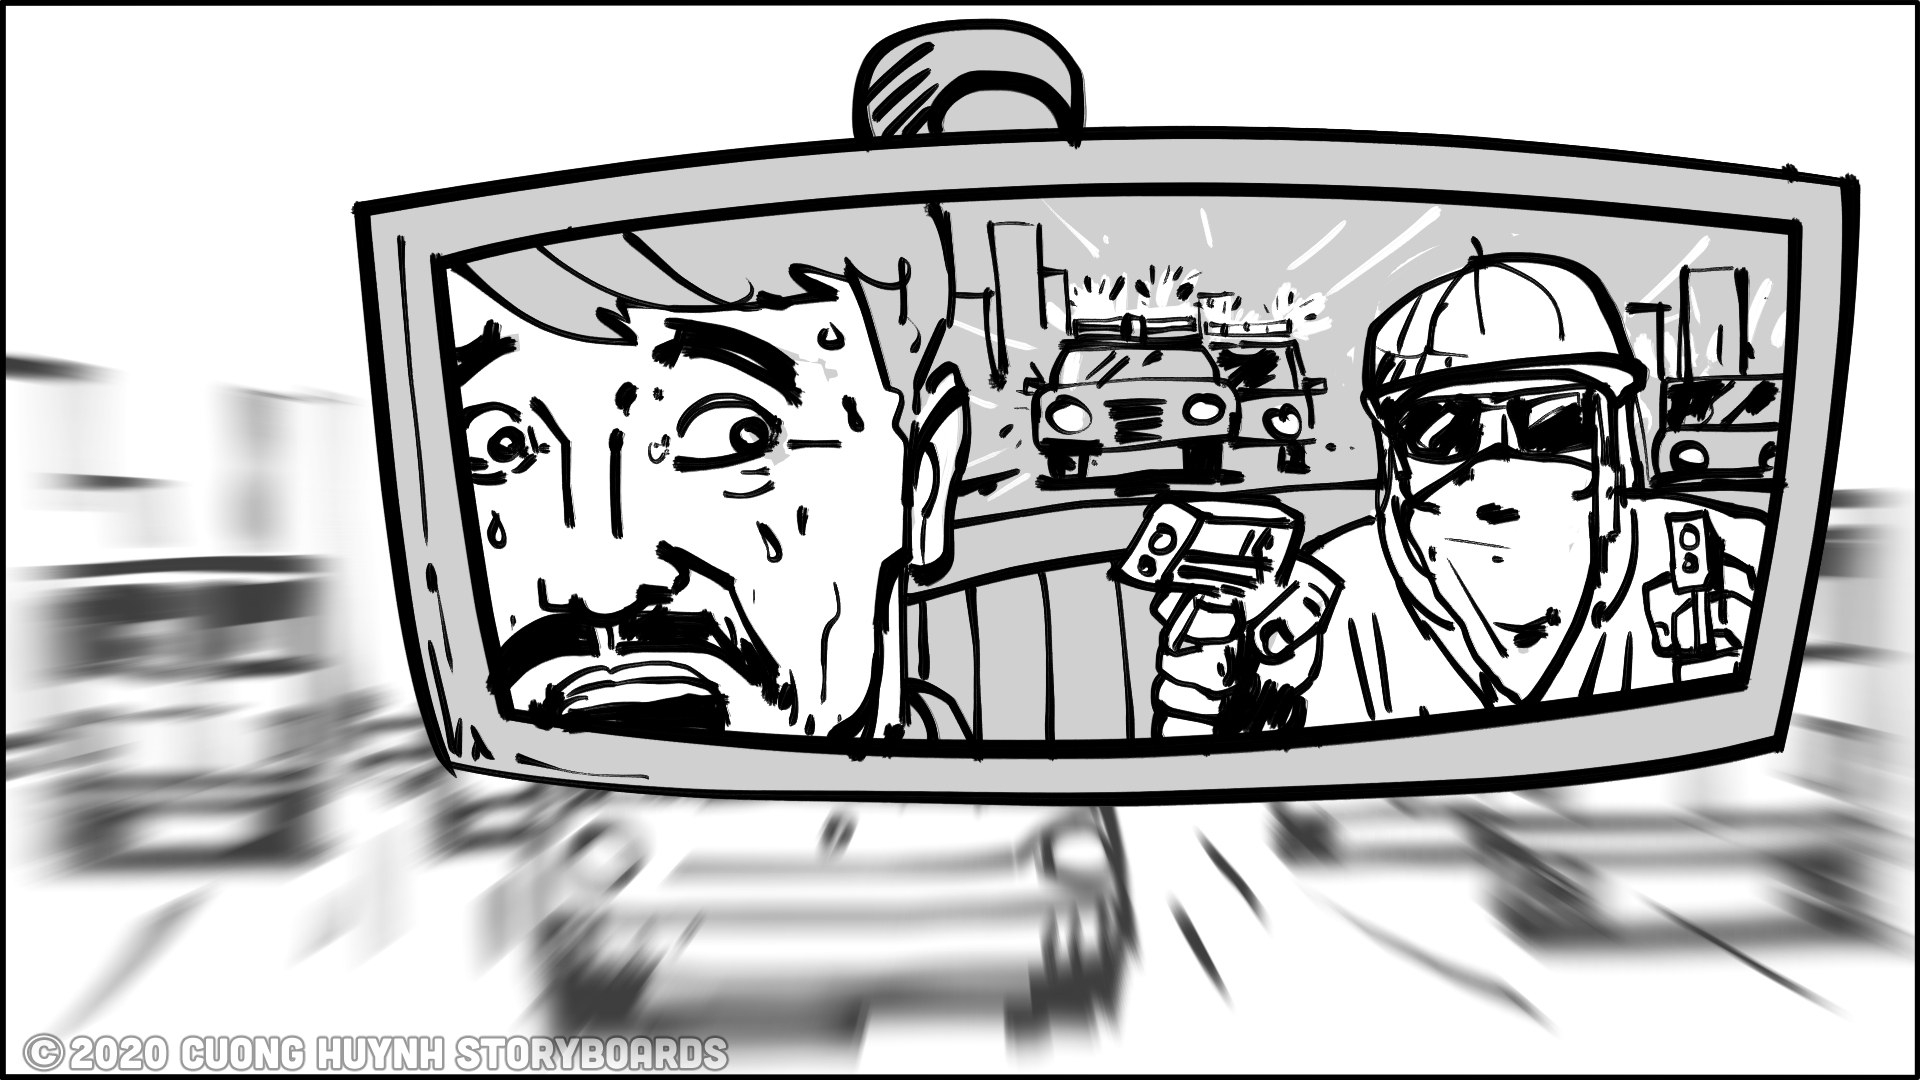 Storyboarding driver-backseat passenger scene - option 2